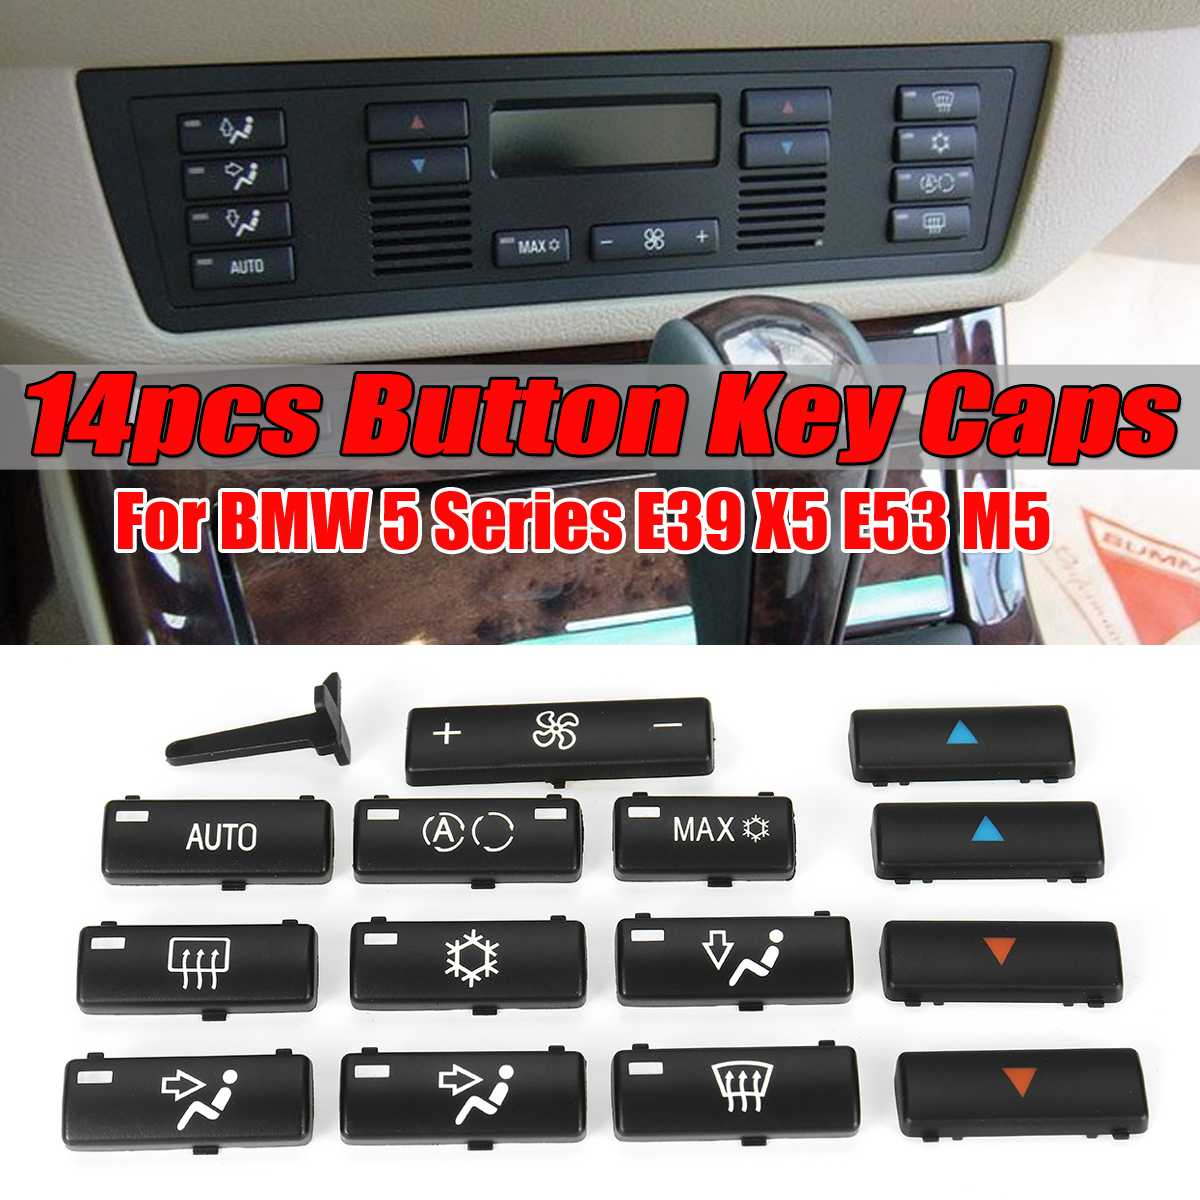 14 Button Key Caps Replacement Climate A/C Control Control Panel Switch Buttons Cover Caps For BMW E39 E53 525i 530i 540i M5 X5